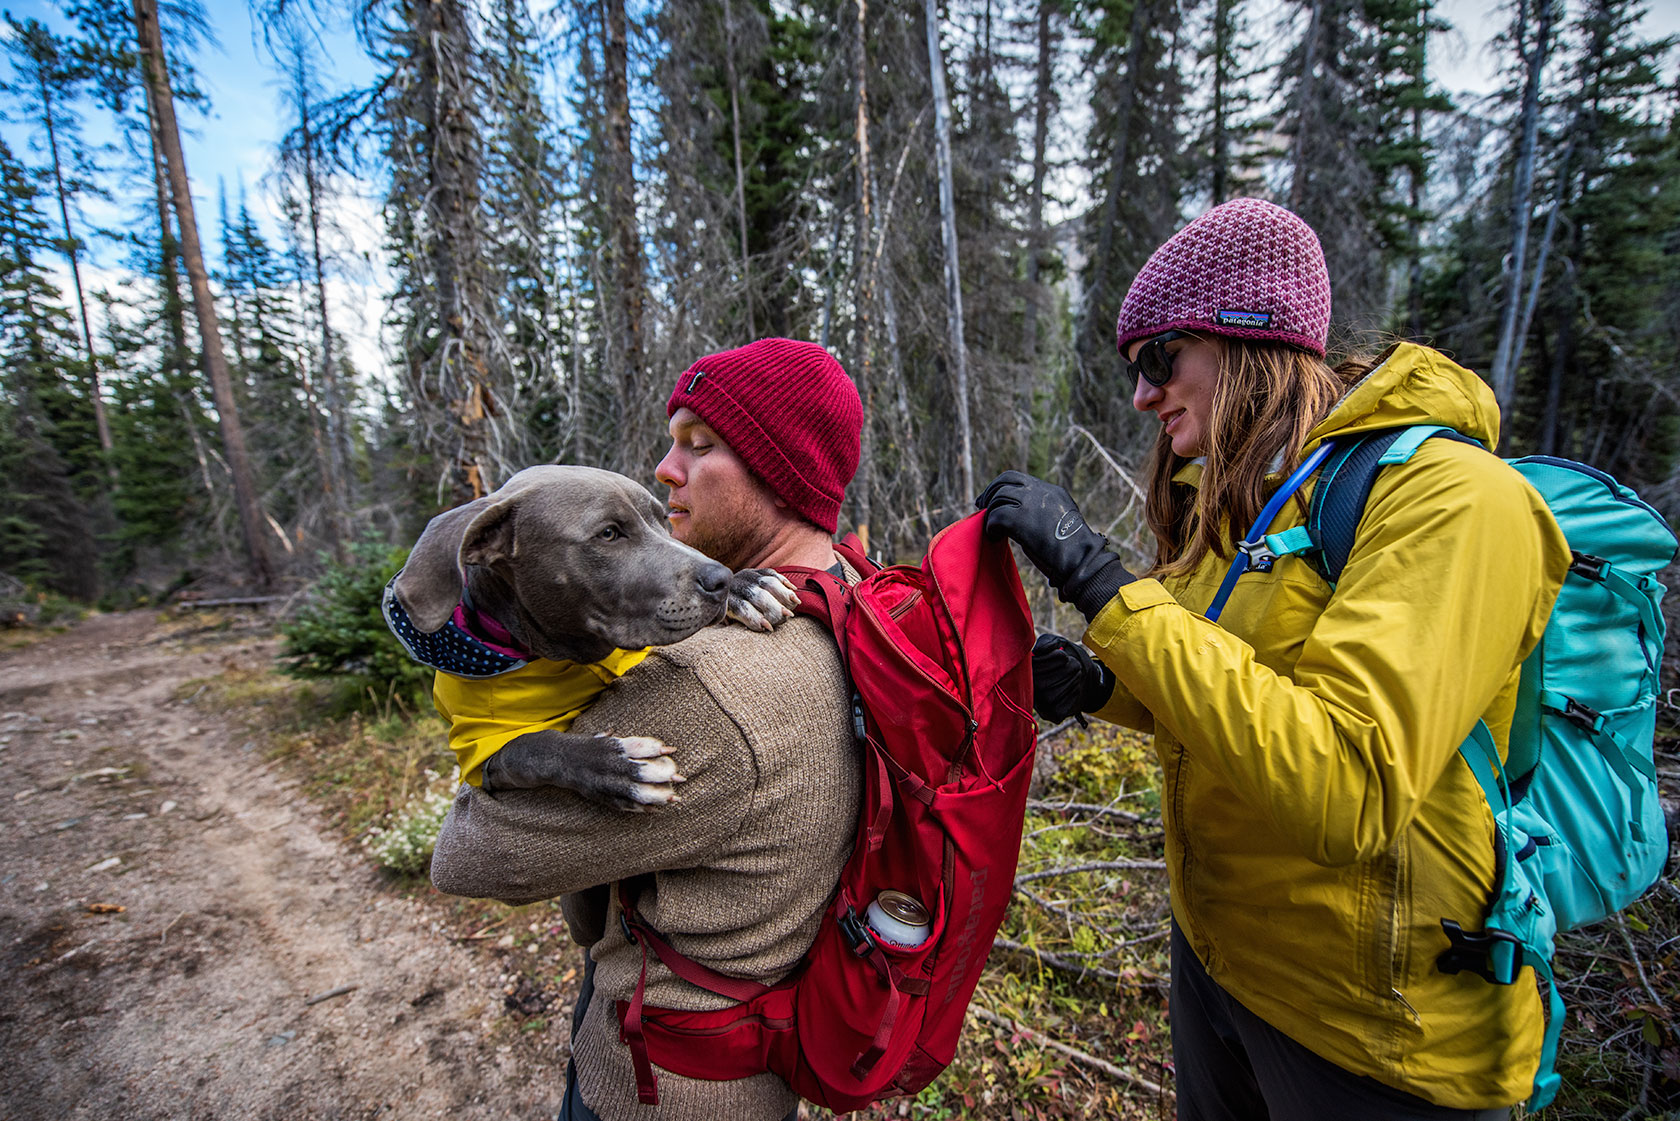 austin-trigg-patagonia-sawtooth-hiking-Dog-stanley-lake-bag-advenure-wilderness-forest-idaho-outside-lifestyle-day-fall-weather-mountains-trees.jpg